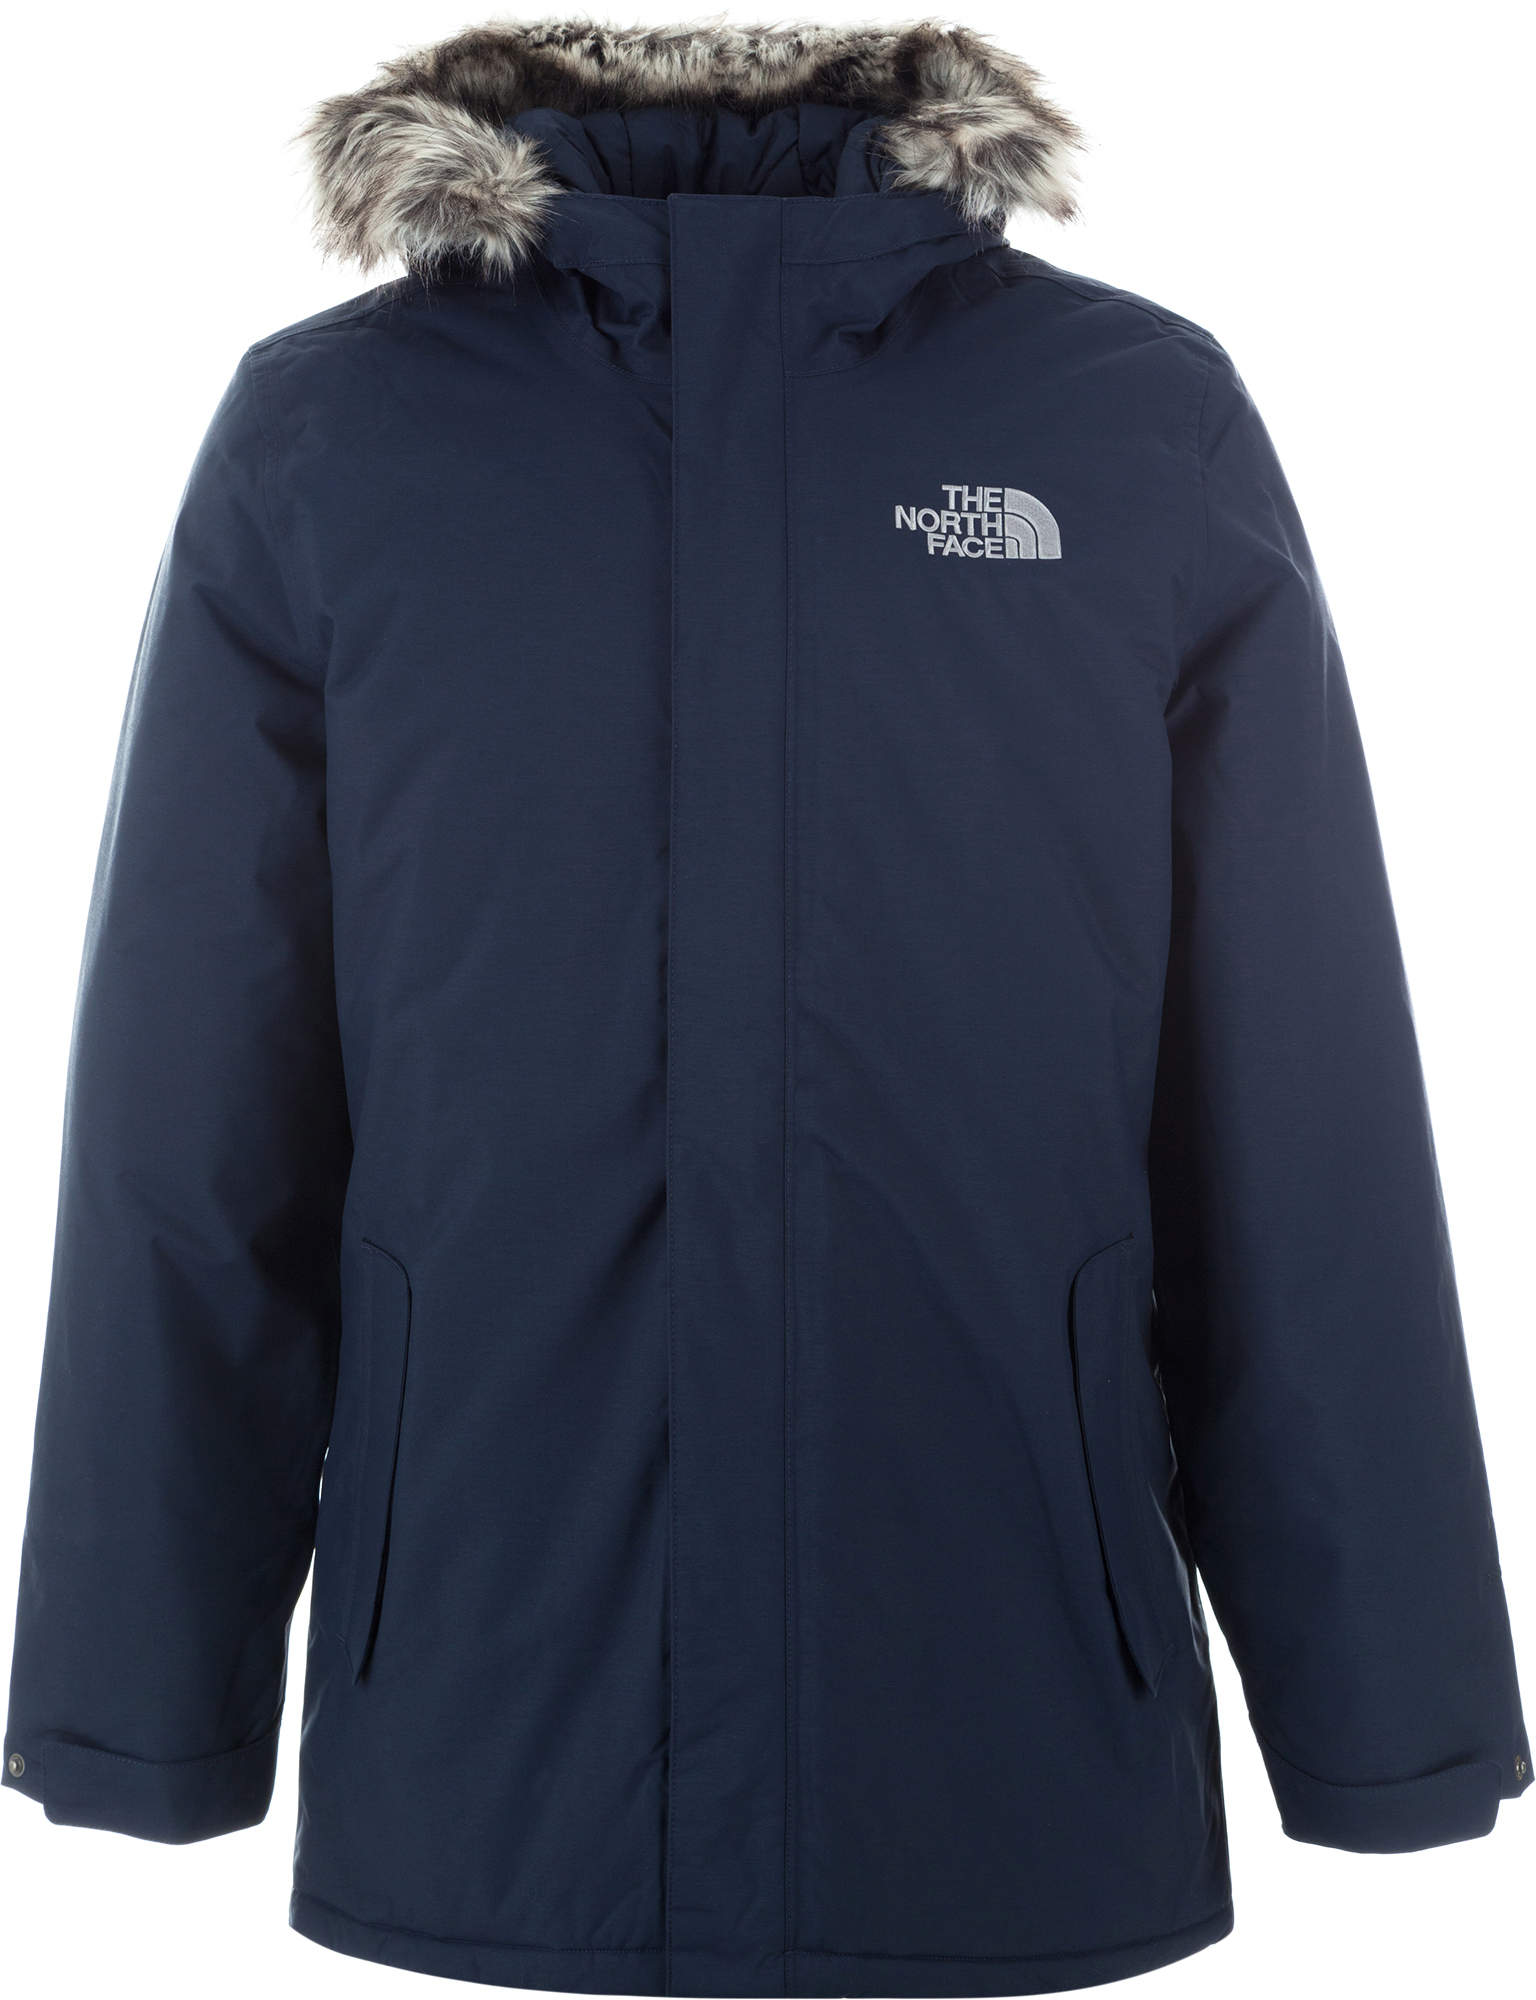 The North Face Куртка утепленная мужская The North Face Zaneck